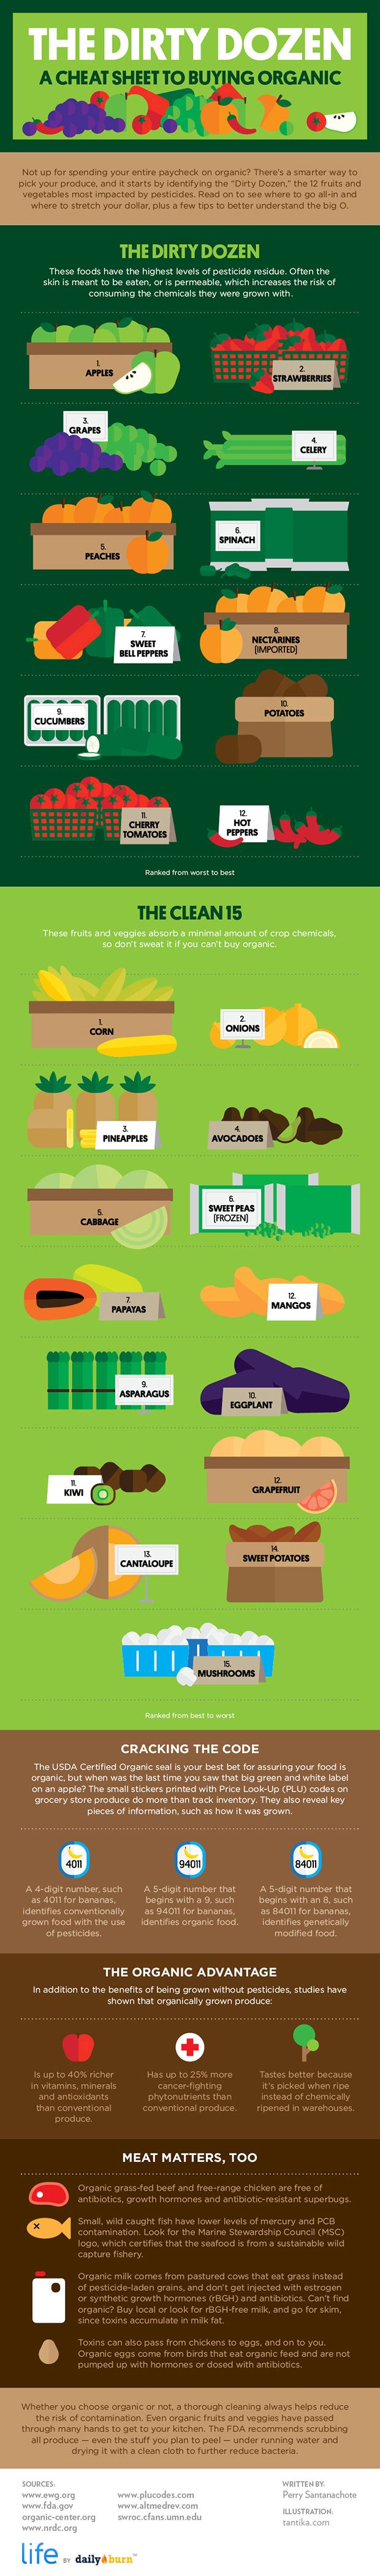 The Dirty Dozen and Clean Fifteen What to Buy Organic [INFOGRAPHIC] by the DailyBurn...I think the meat section is inaccurate, as some of those labels are misleading. i.e. grass-fed beef can be labeled that even if they were corn-fed until the last weeks of their lives and then switched to grass-fed.